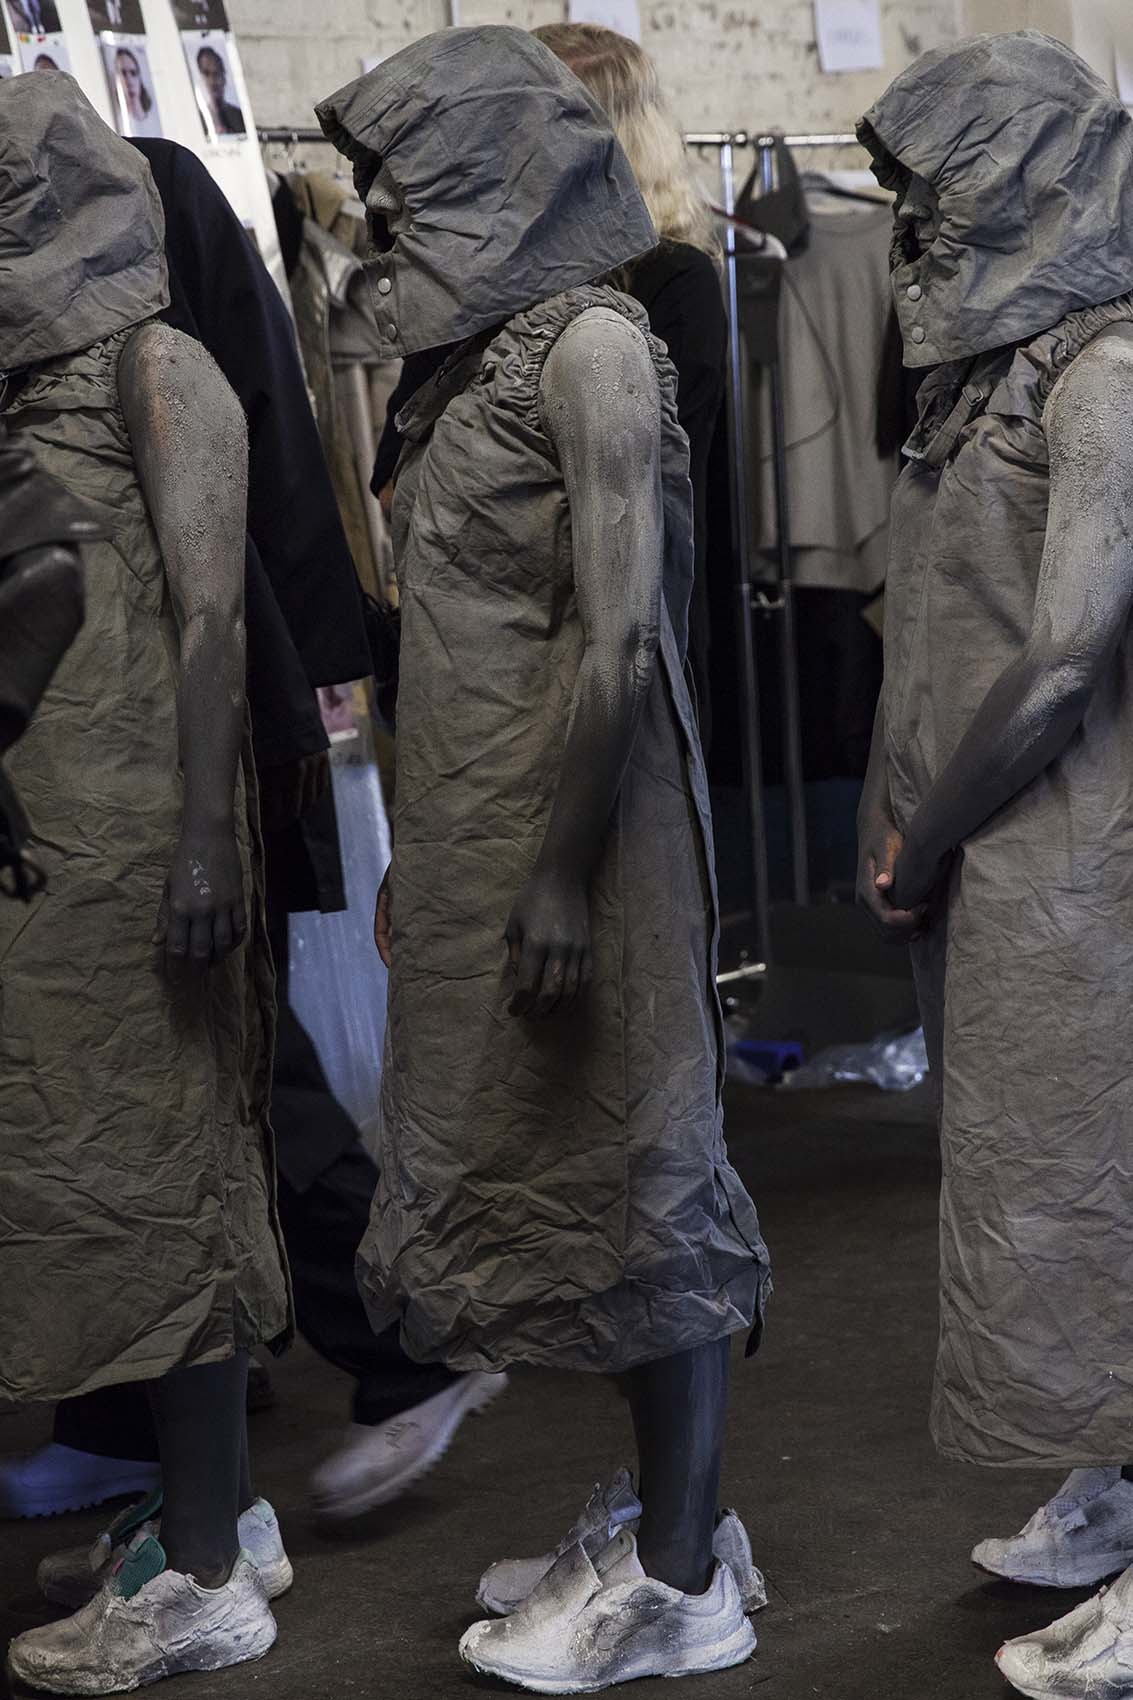 A Cold Wall // A-COLD-WALL SS'19 Show Images at London Fashion Week Men's by Caoimhe Hahn for Sagaboi. June 10 2018